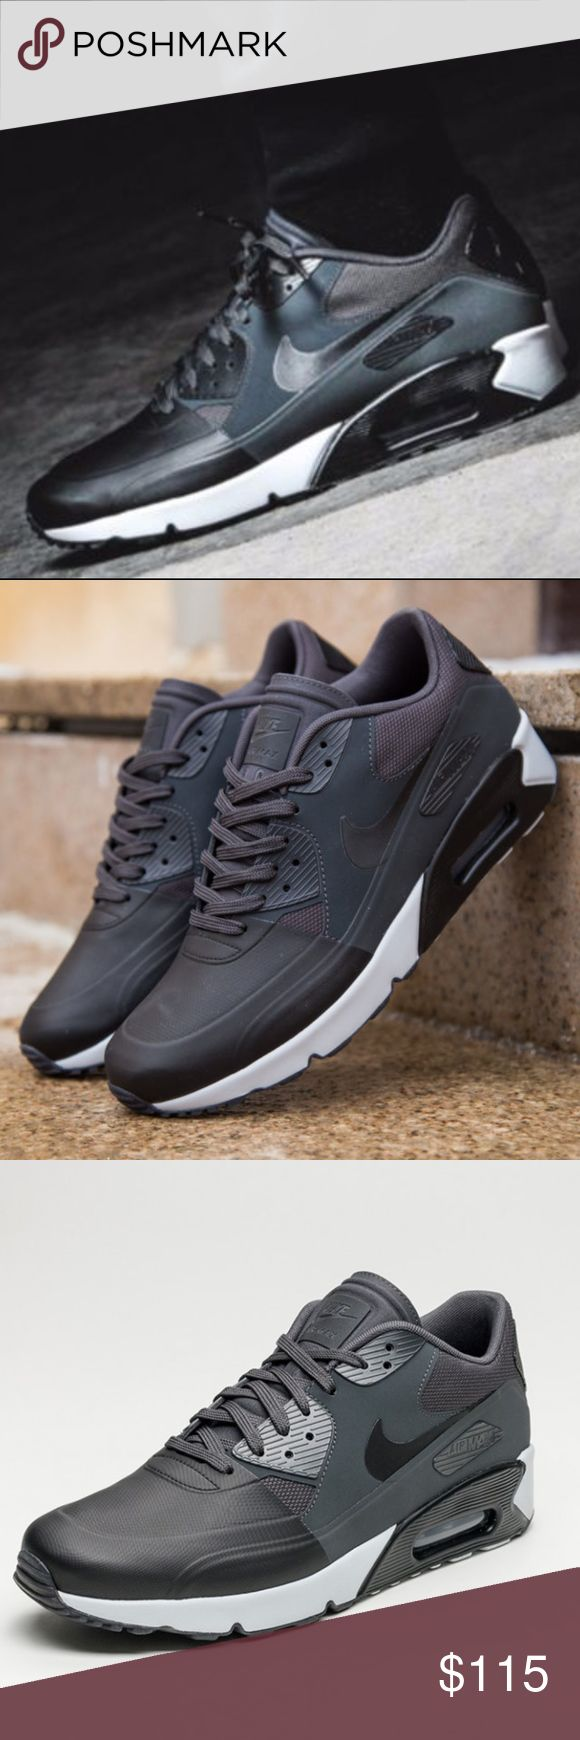 Men's Nike AIr Max 90 Ultra 2.0 SE Size 9.5 -Brand New in Box -100% Authentic -Excellent Condition -Size 9.5 Men -Black Grey Colorway   -Lace closure  -Men's low top sneaker  -Leather upper  -Nike swoosh branding  -Max air unit -*Fit: True to size Nike Shoes Sneakers